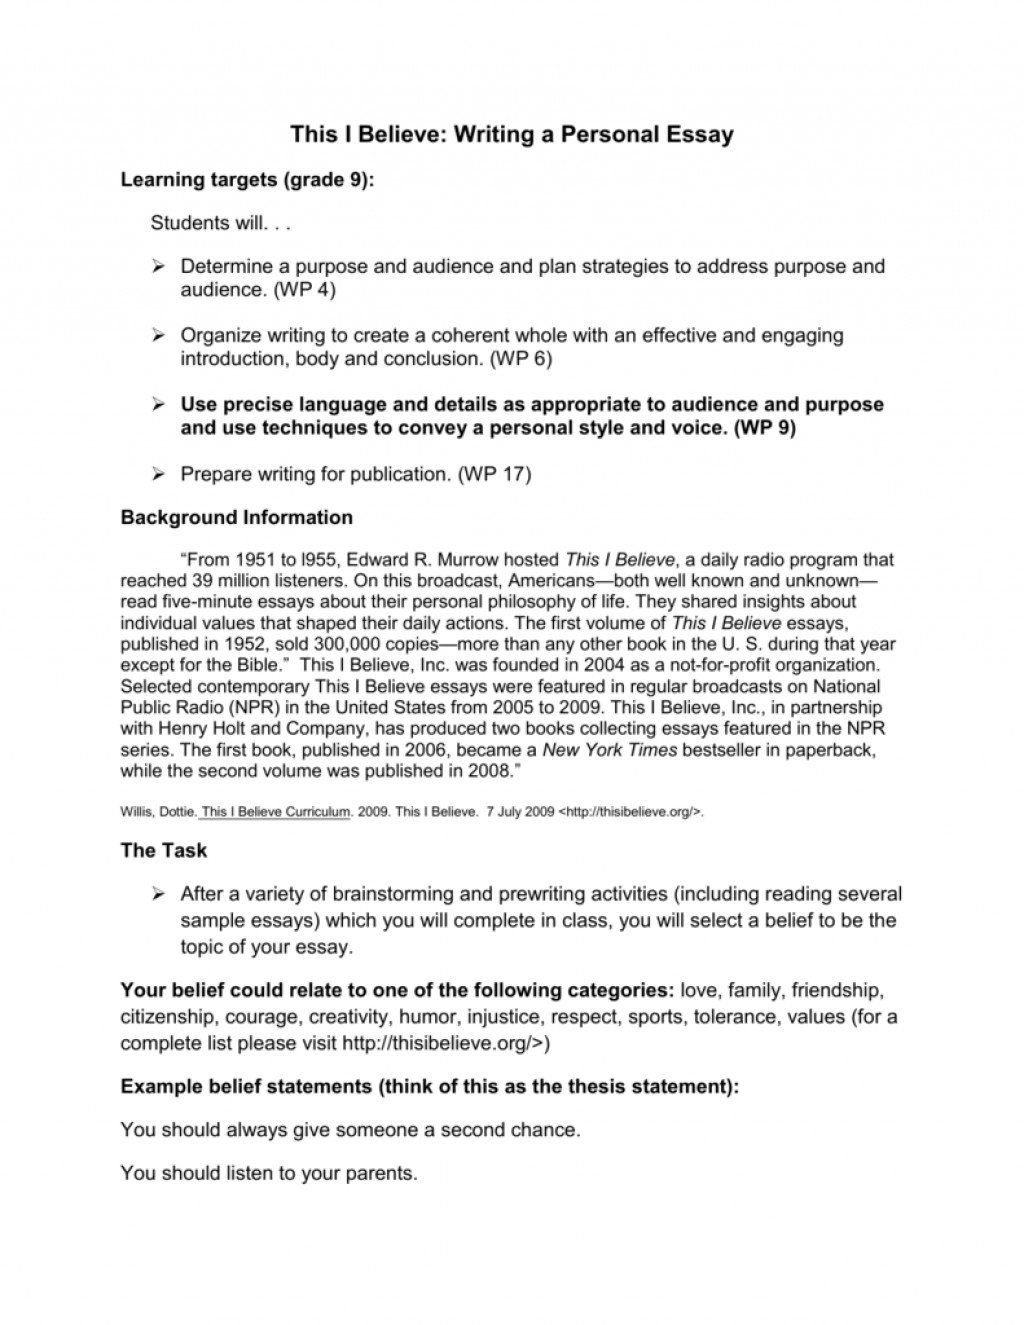 004 I Believe Essays 006750112 1 Phenomenal Essay Examples This Personal College Large